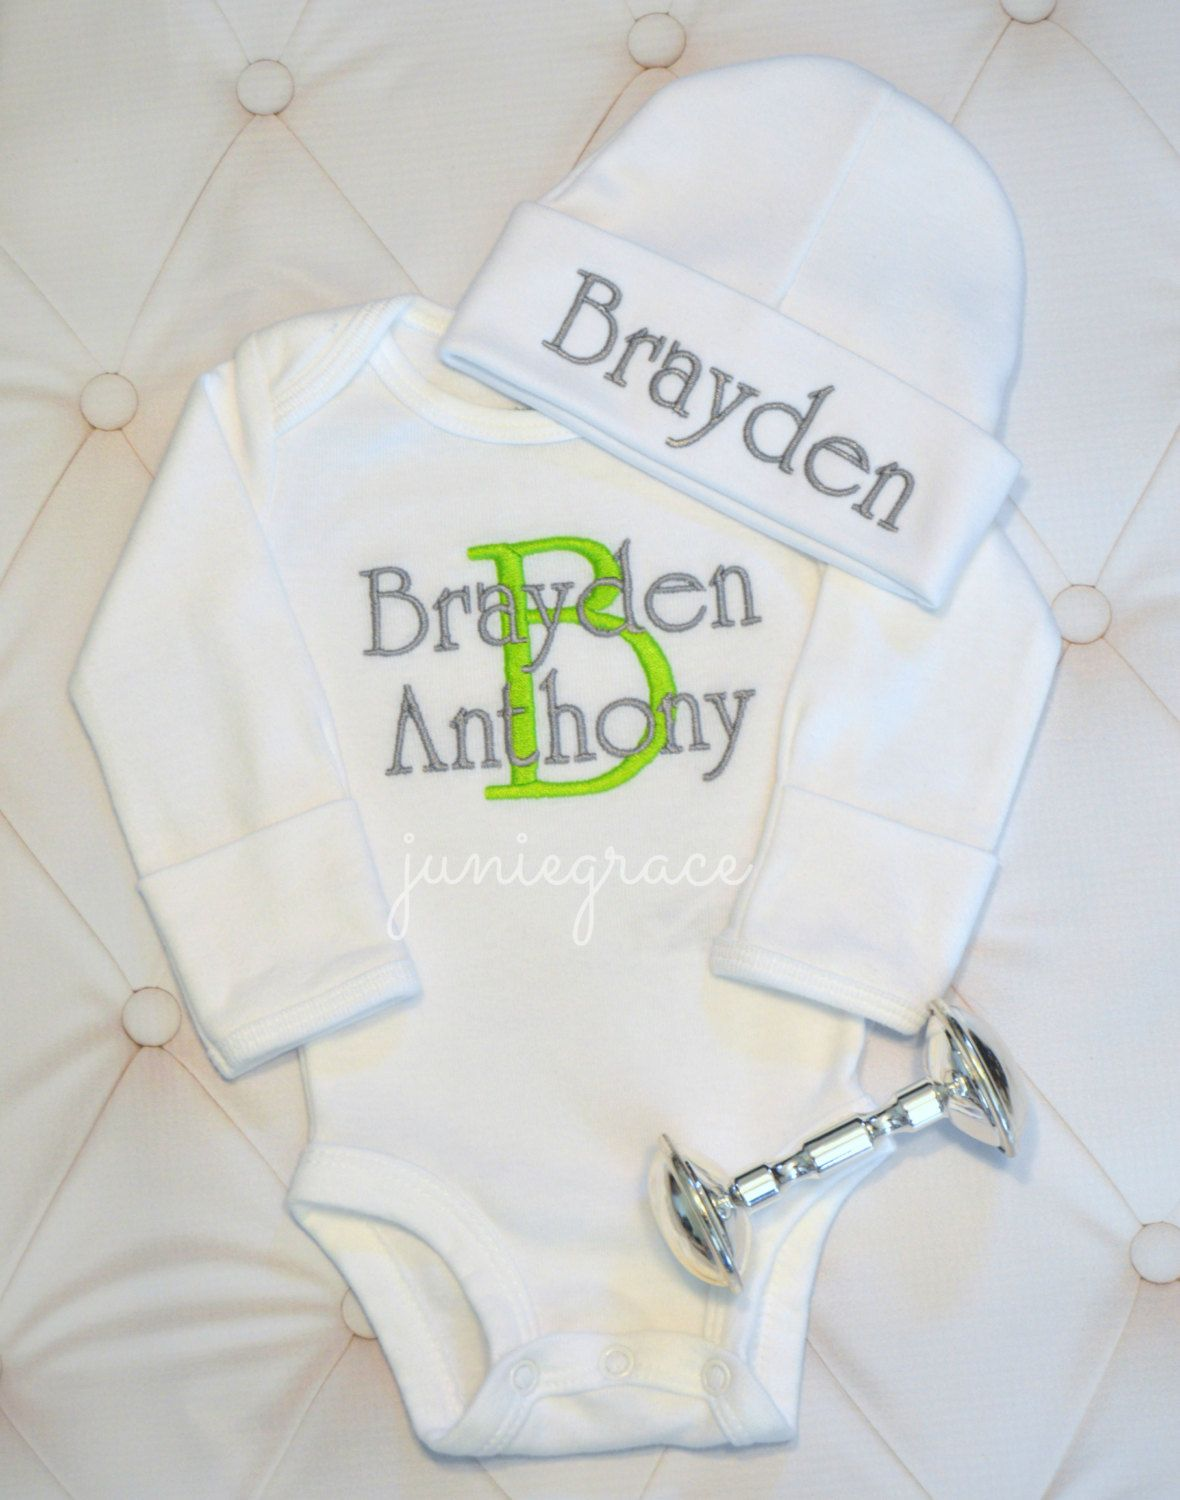 a52c57400d0 Baby Boy Coming Home Outfit Baby Boy Clothes Newborn Baby Boy Outfit Baby  Boy Hat Personalized Take Home Outfit Baby Boy Gift FREE SHIPPIN by  juniegrace on ...